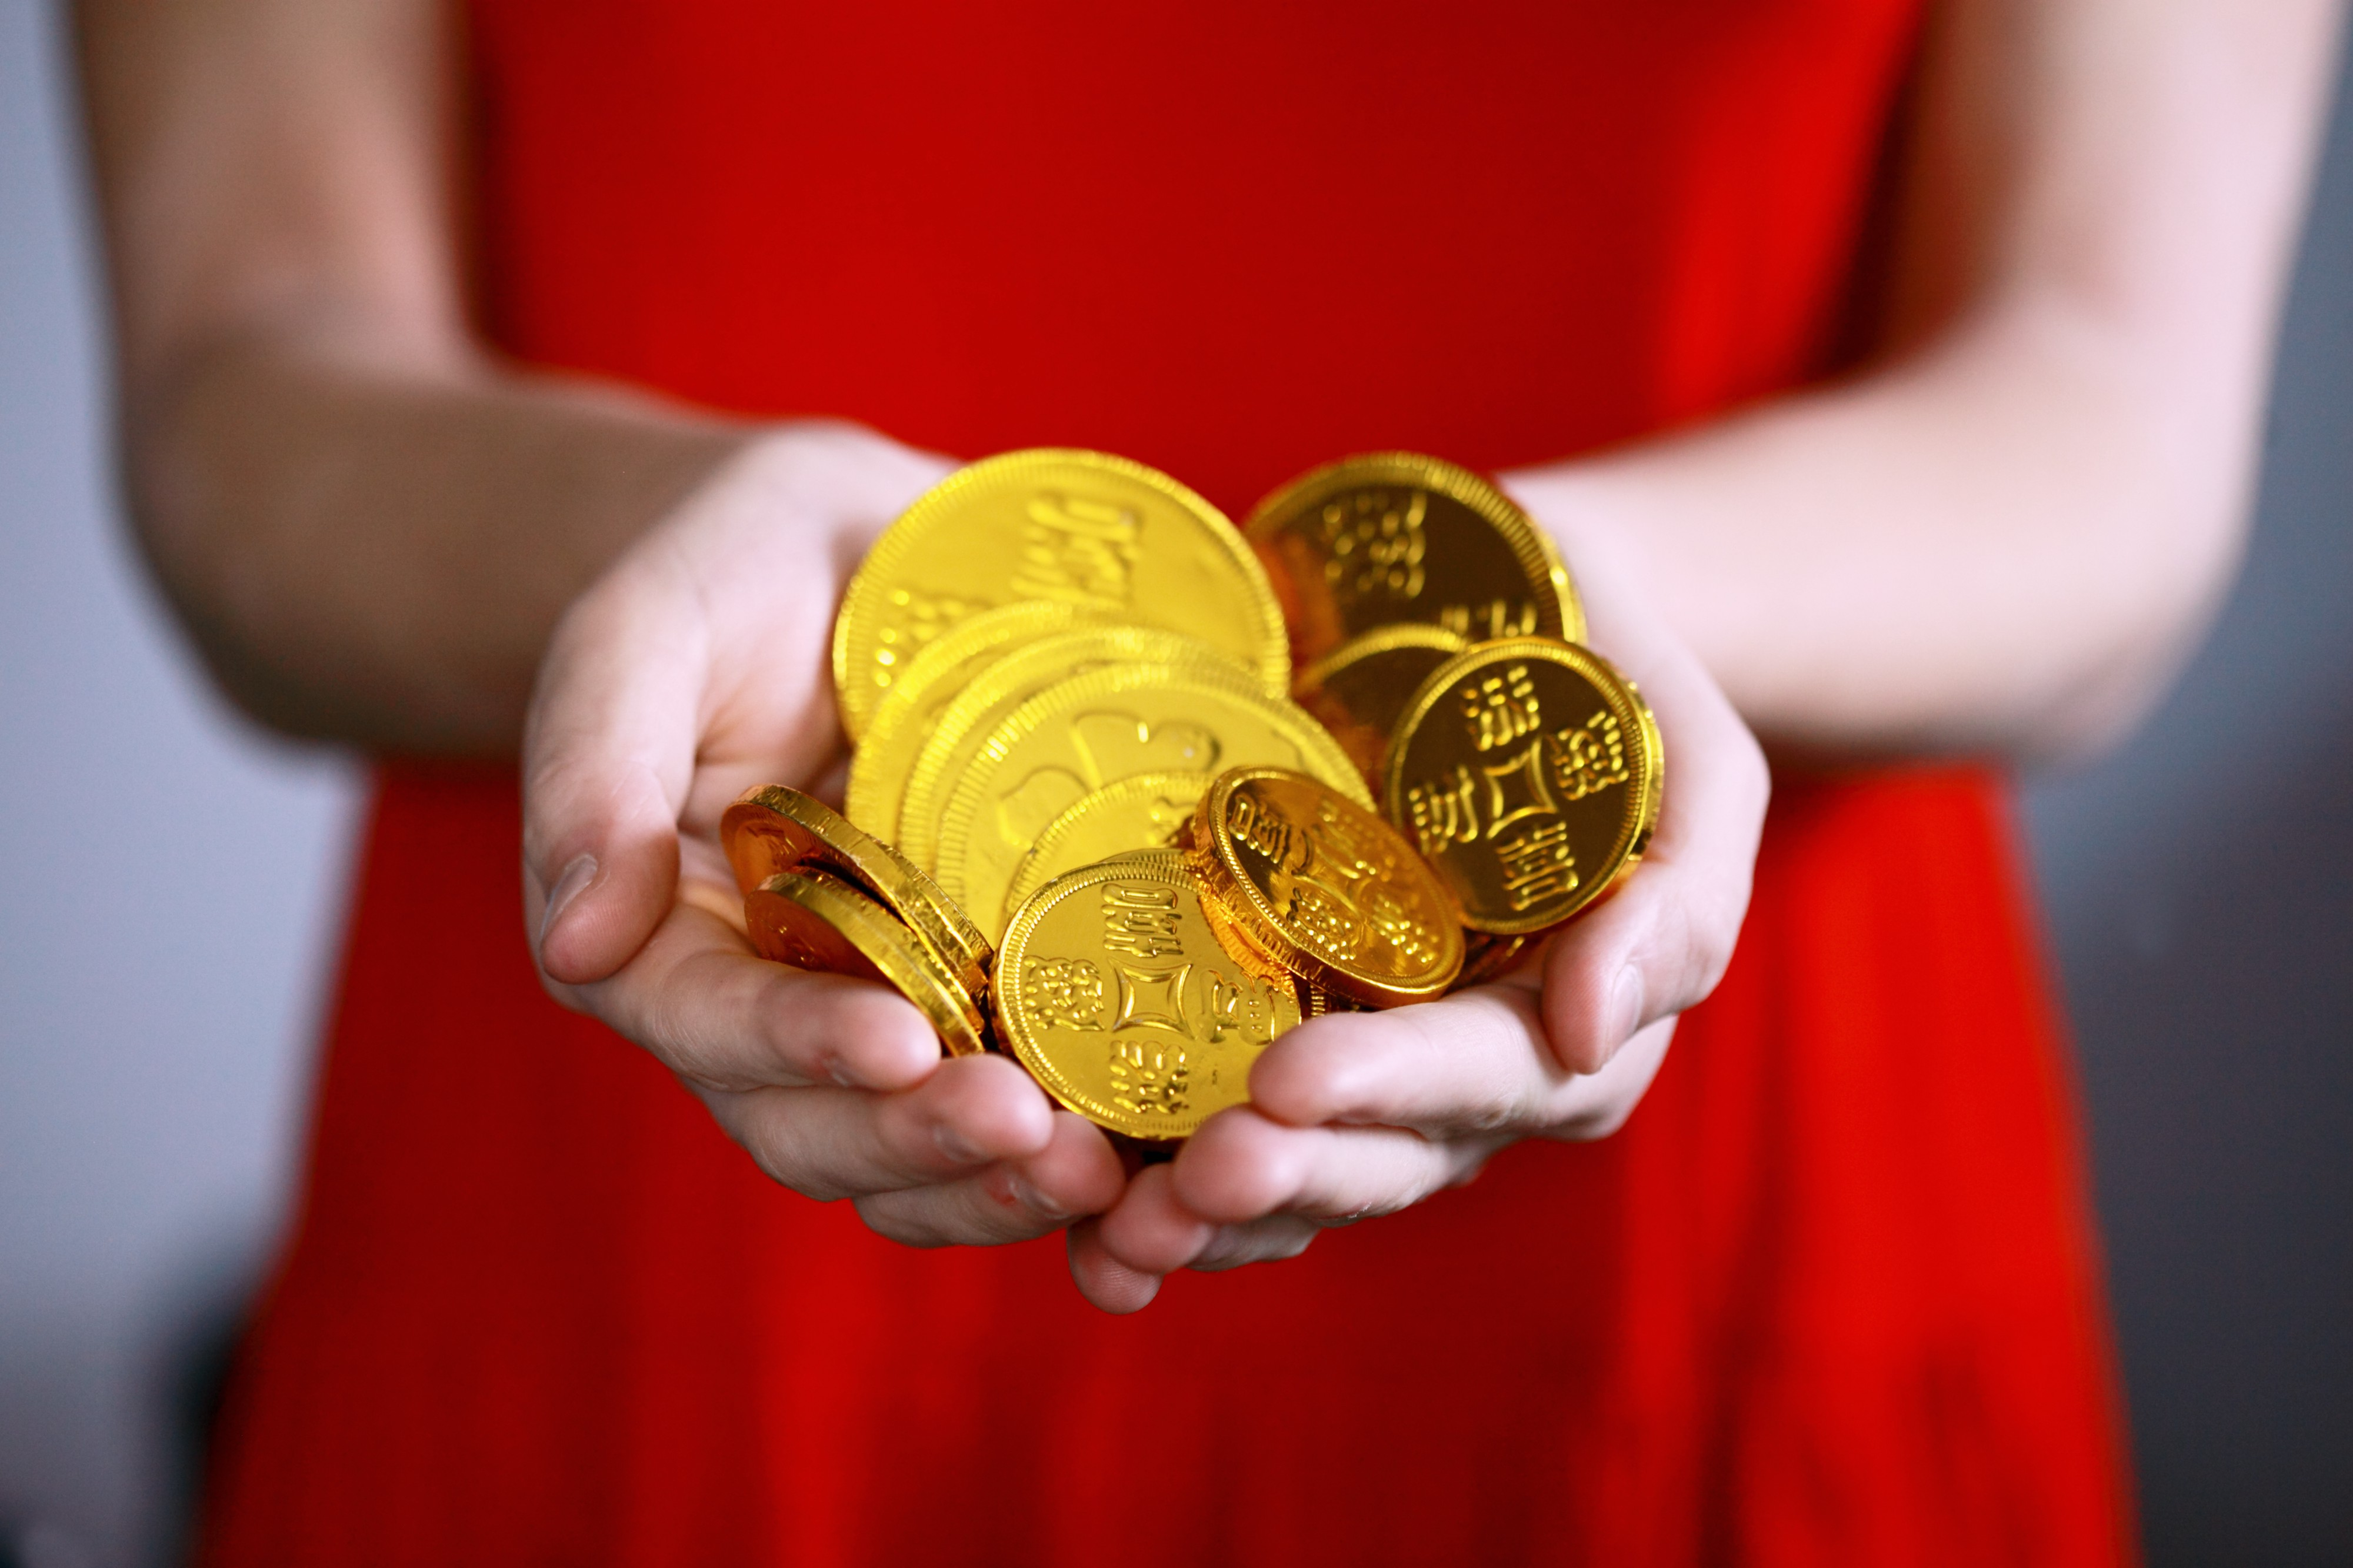 Girl in red dress holding a pile of gold cryptos with both hands cupped in front of her